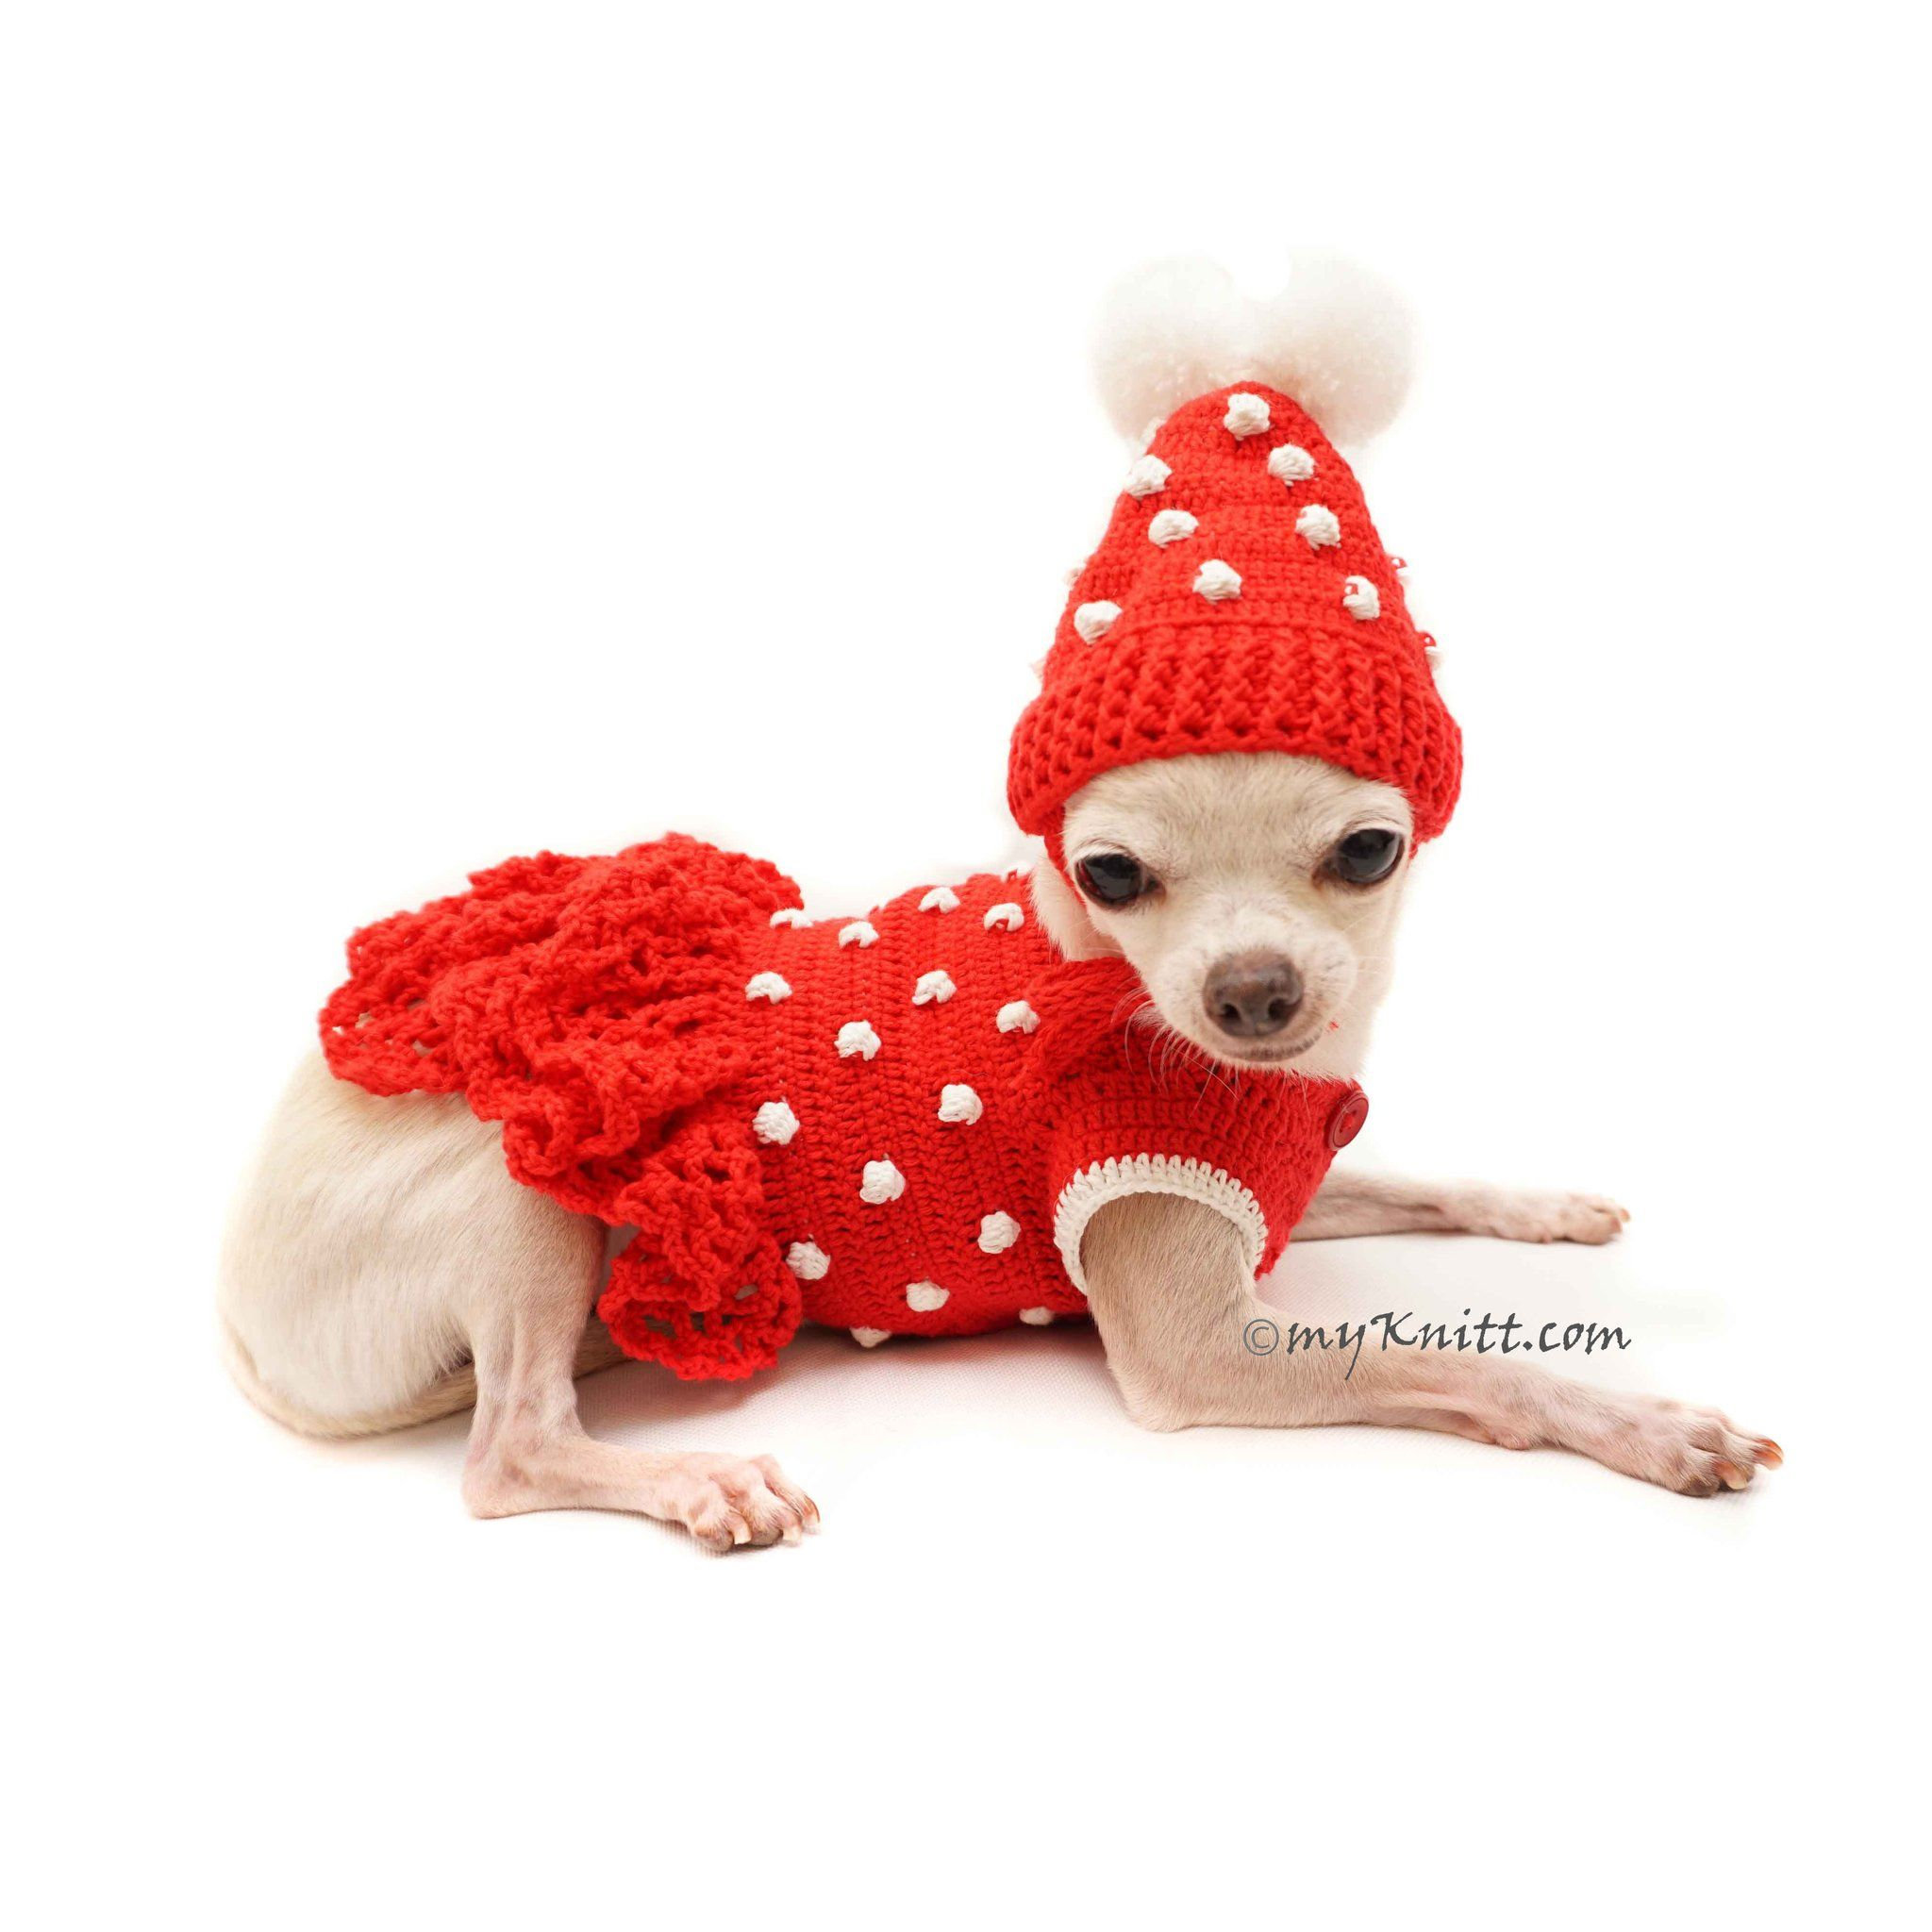 23c37f117d65 Custom Dog Clothes Girl Dog Dresses by Myknitt #cutechihuahua  #chihuahuapuppies #customdogclothes #designerdogclothes #girldogdresses  #reddogdress